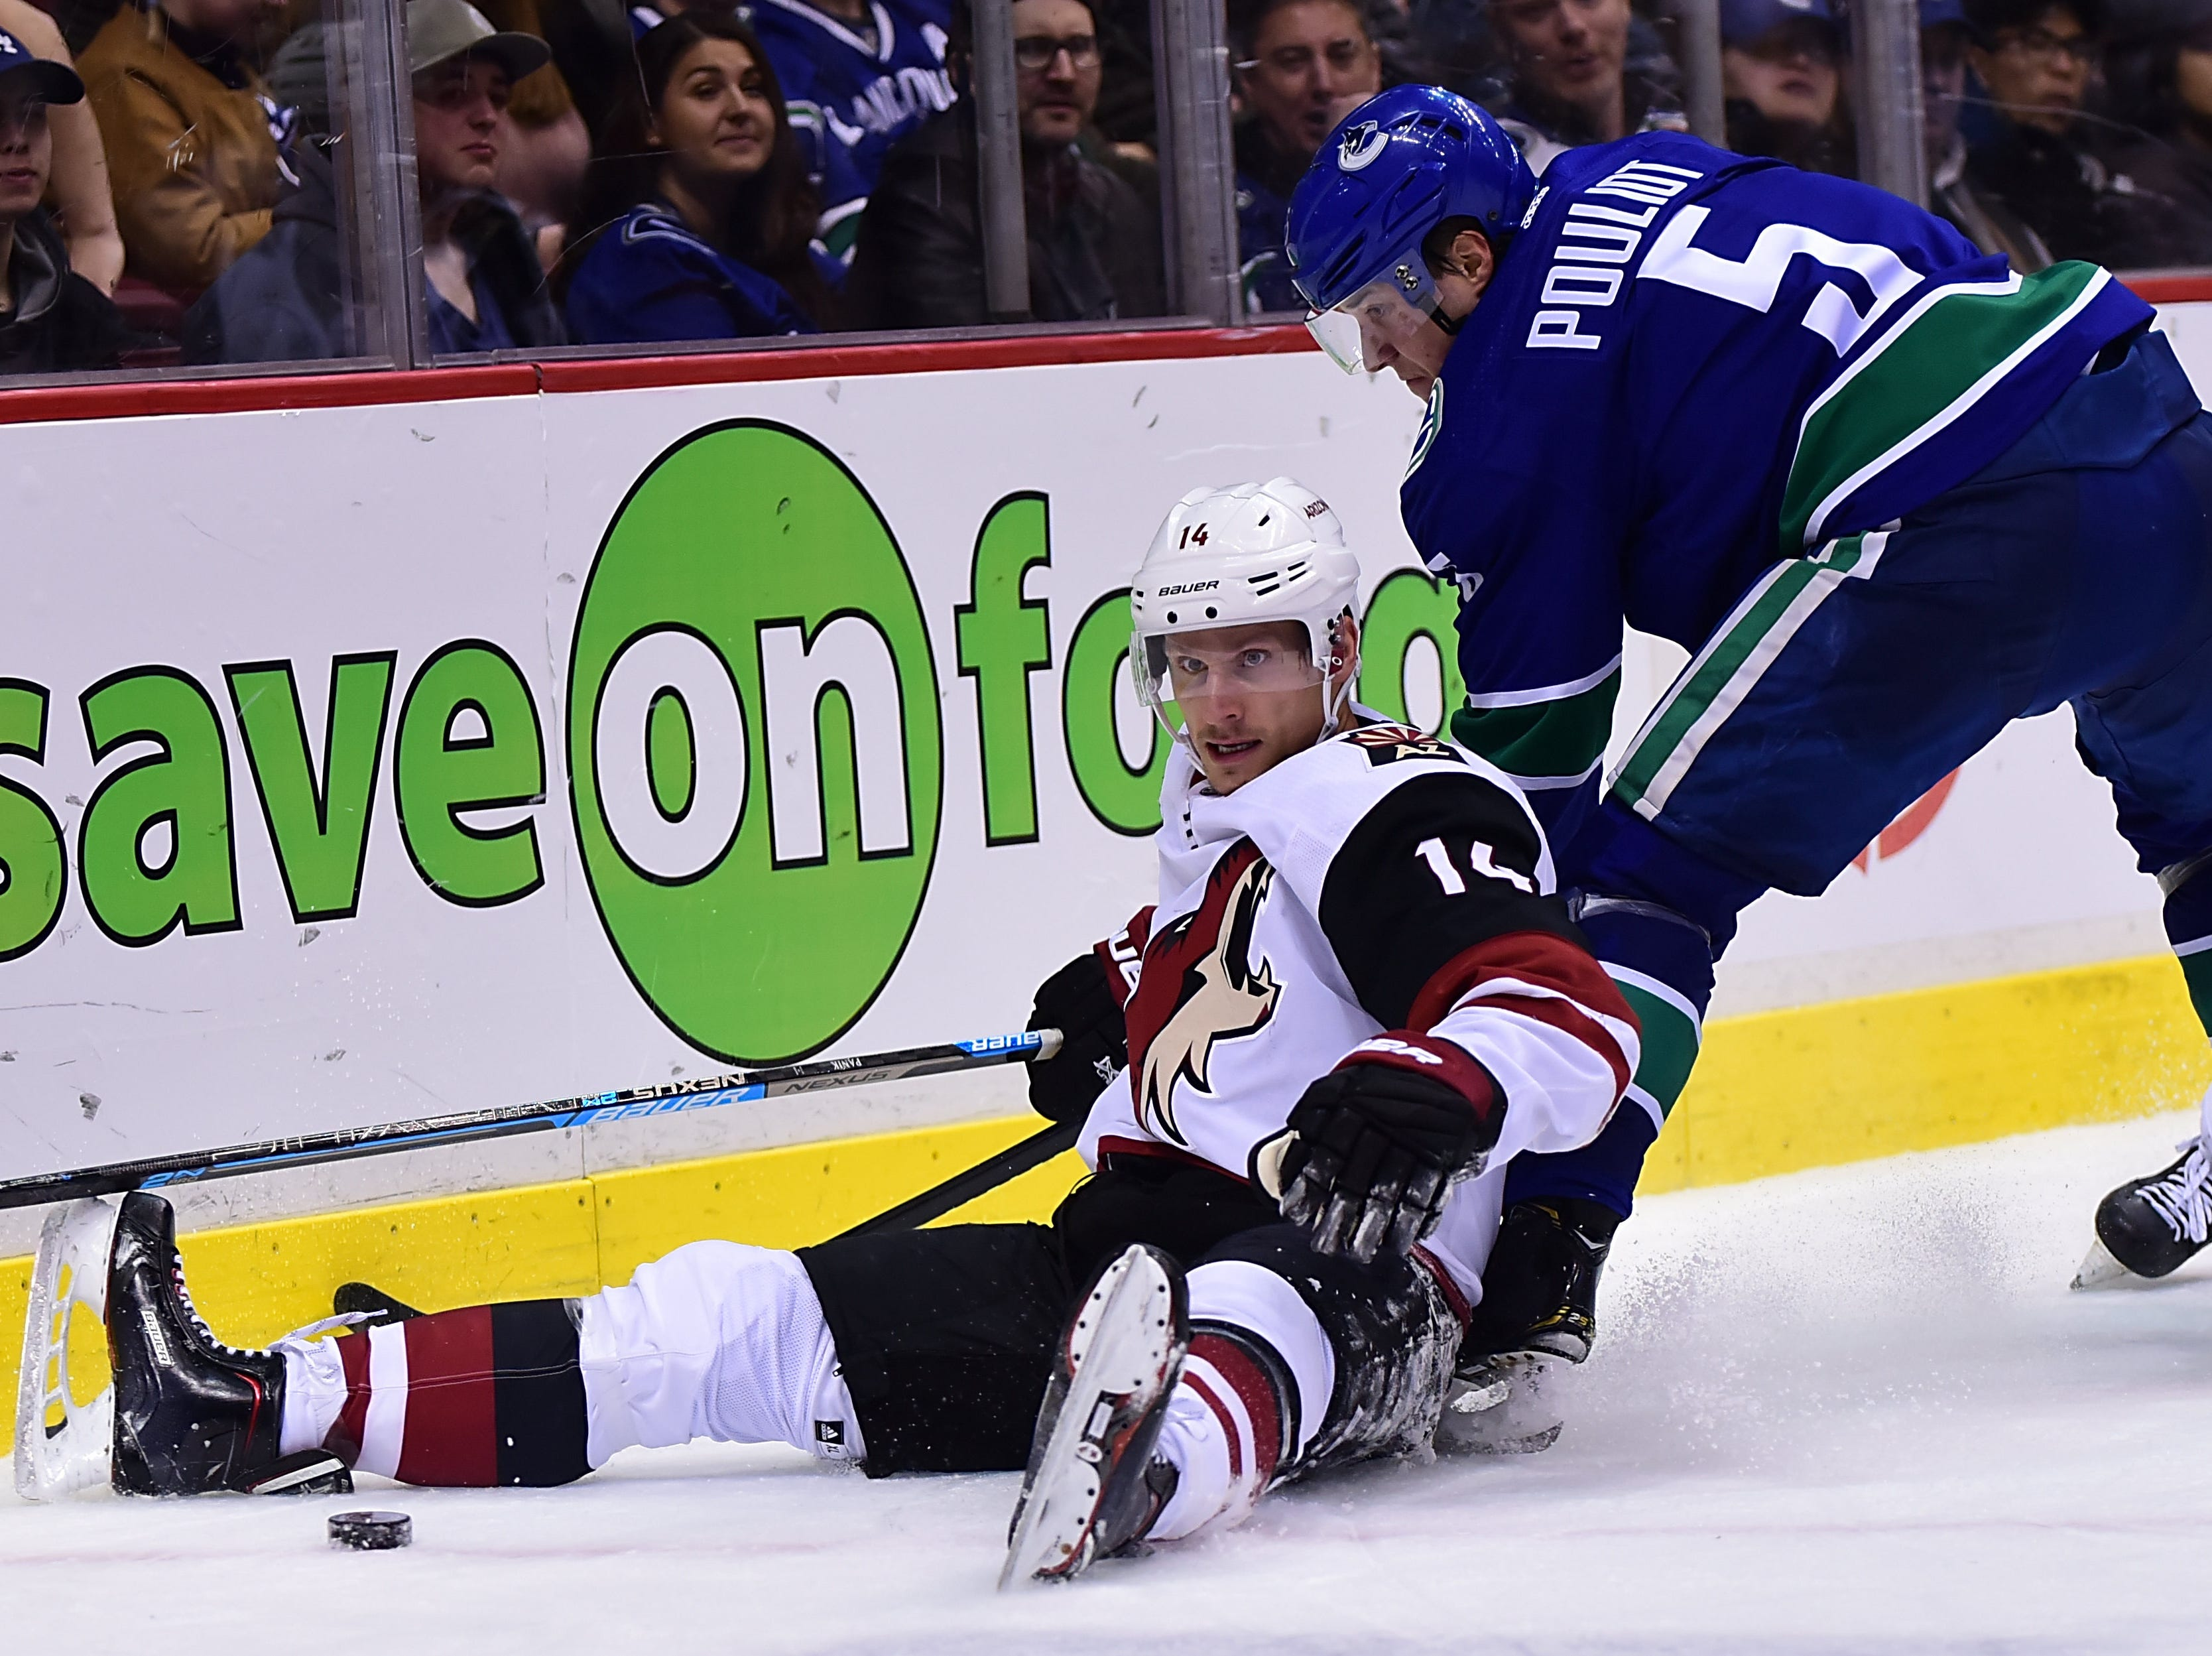 Feb 21, 2019; Vancouver, British Columbia, CAN; Arizona Coyotes forward Richard Panik (14) battles for the puck against Vancouver Canucks defenseman Derrick Pouliot (5) during the second period at Rogers Arena. Mandatory Credit: Anne-Marie Sorvin-USA TODAY Sports